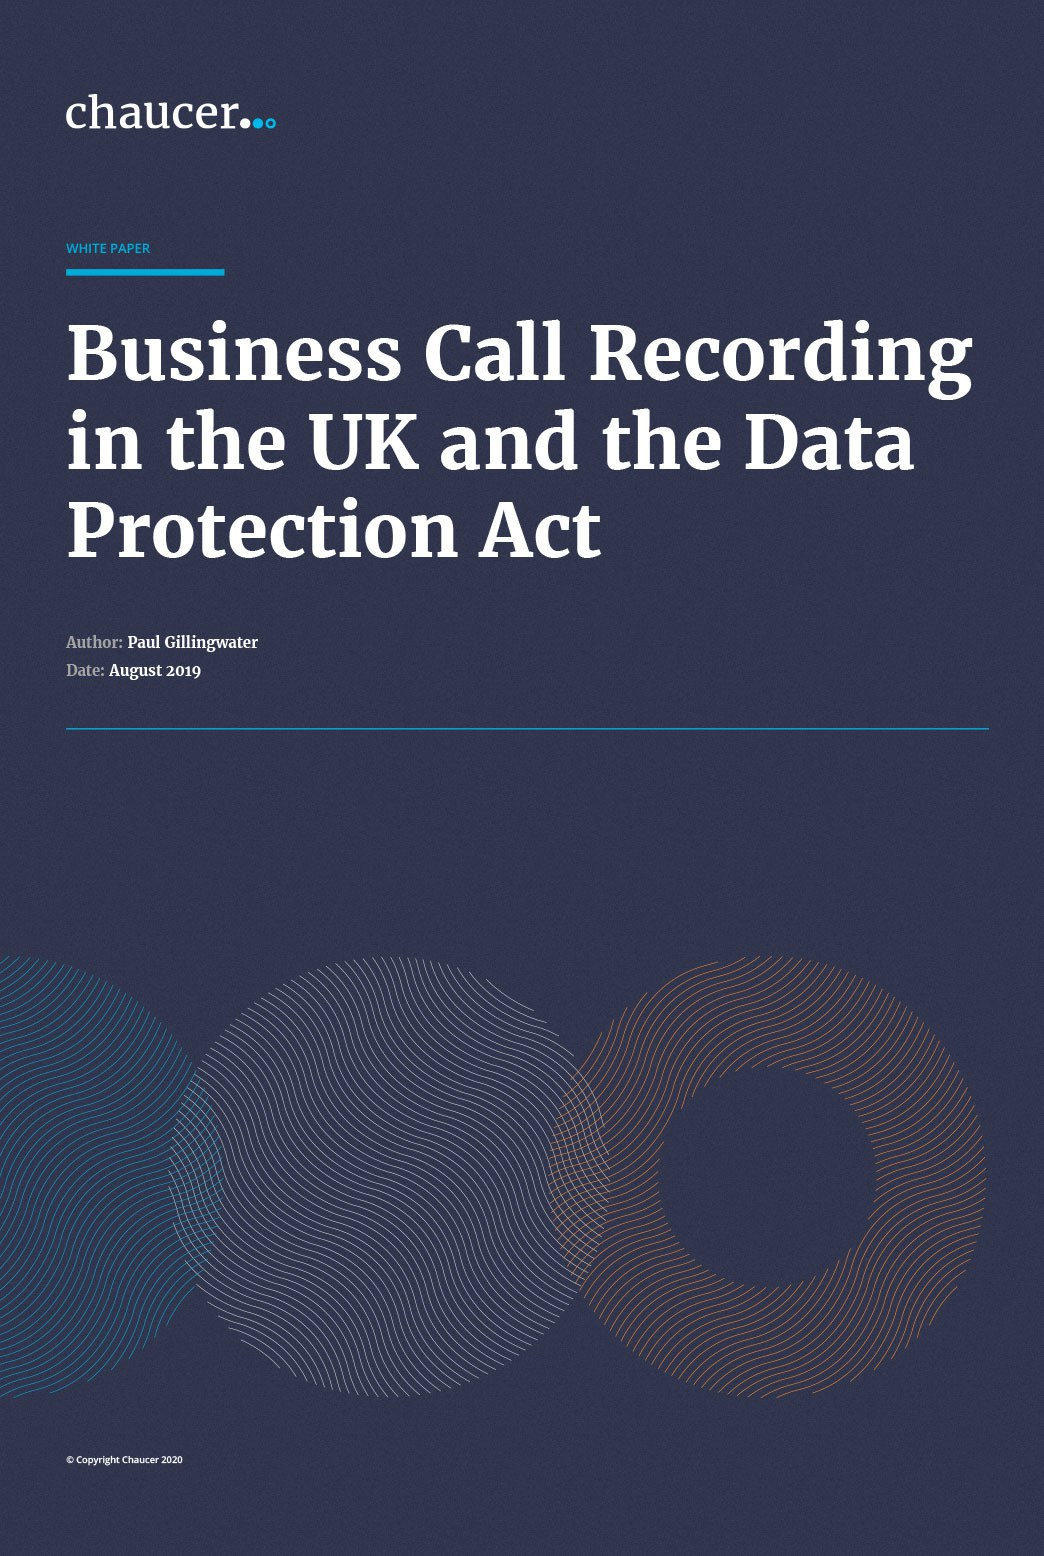 Business Call Recording in the UK and the Data Protection Act